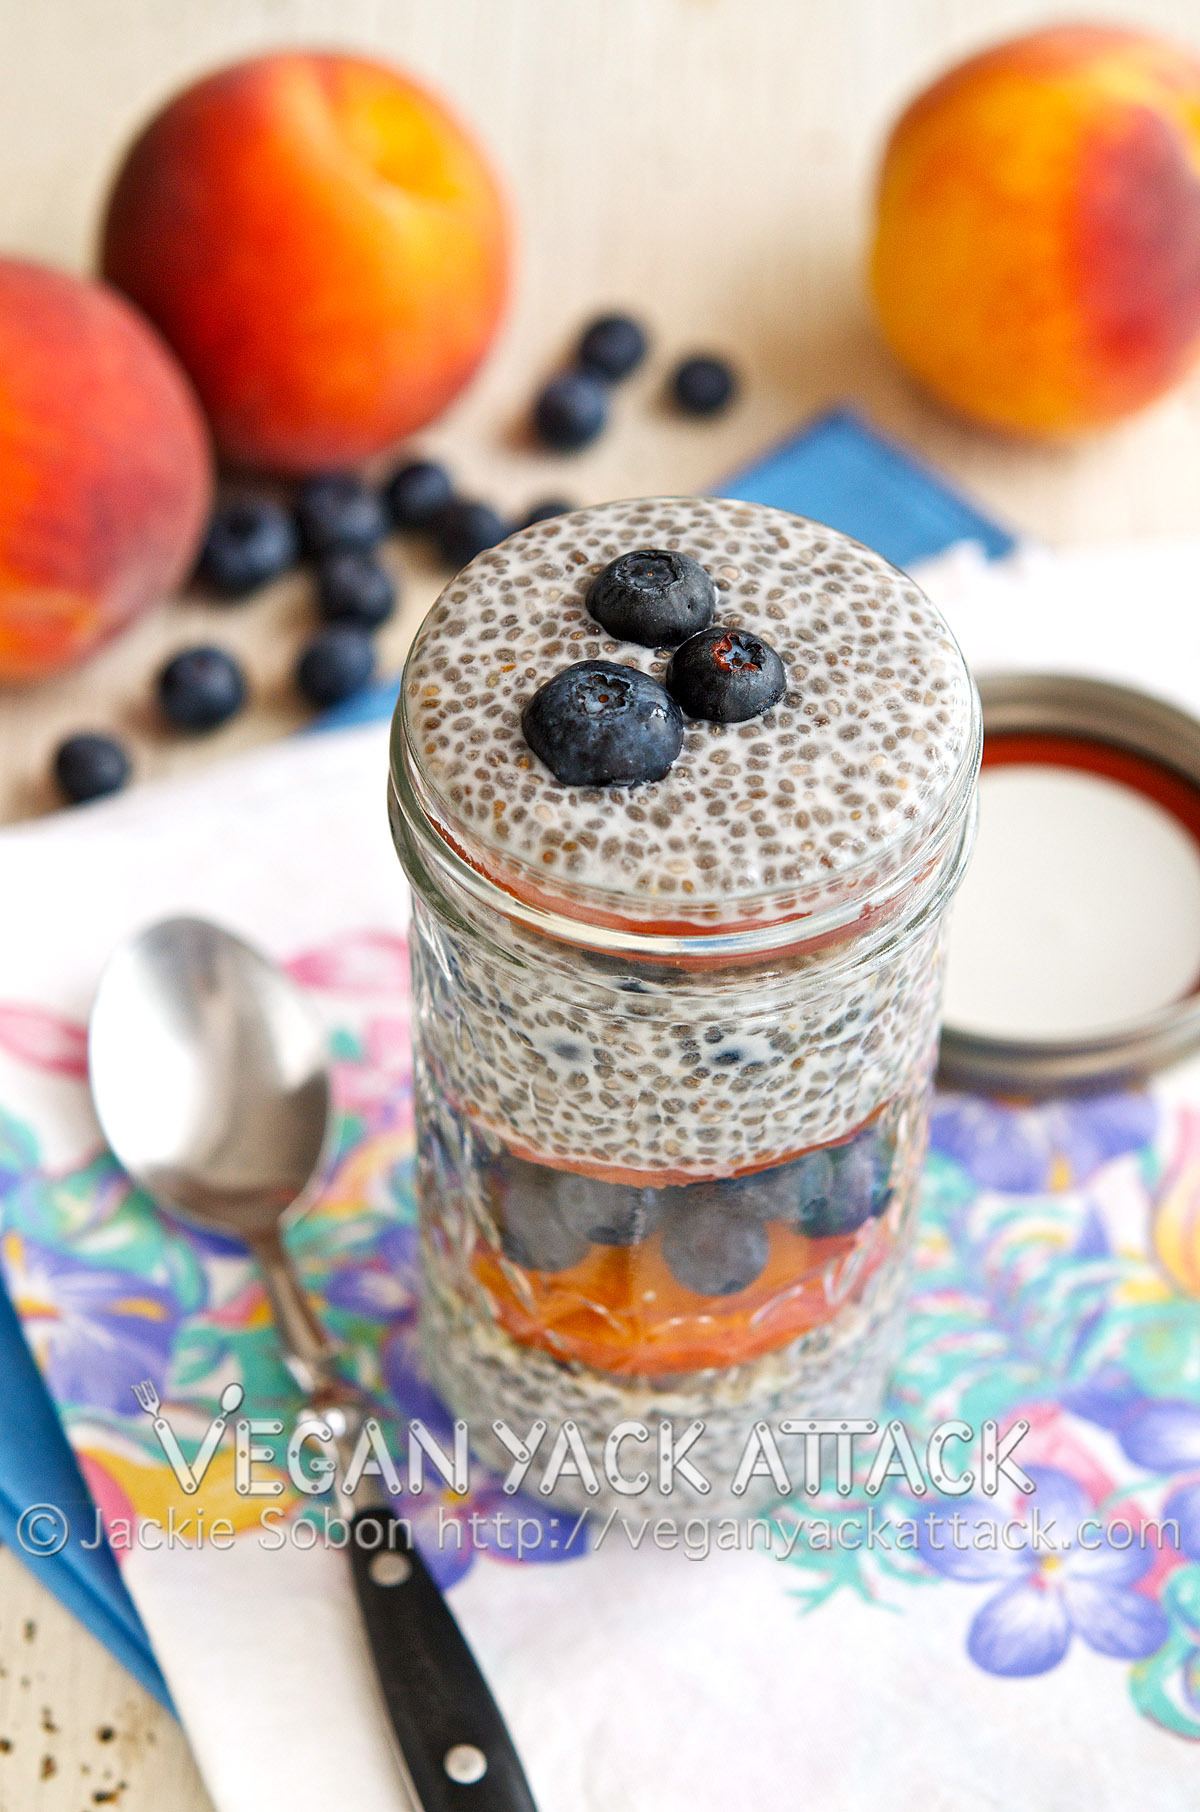 Blueberry Peach Chia Parfait A great way to beat the heat while enjoying a delicious and nutrient-filled parfait! Check out the recipe at Vegan Yack Attack!